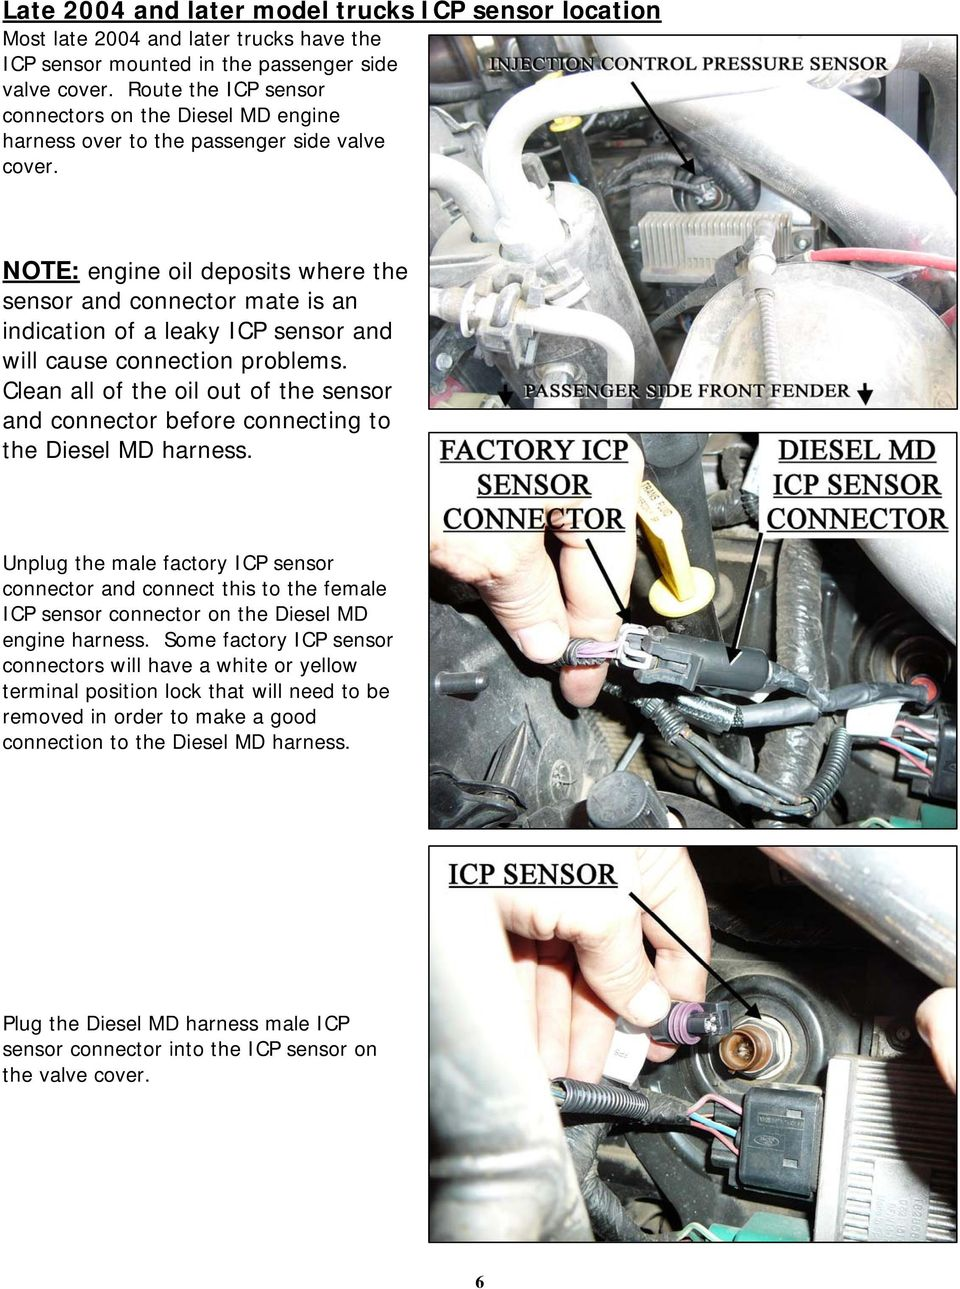 2004 Ford F 250 Icp Sensor Connector Installation Instructions For 63011 Striker Diesel Md Power Modules Note Engine Oil Deposits Where The And Mate Is An Indication Of A